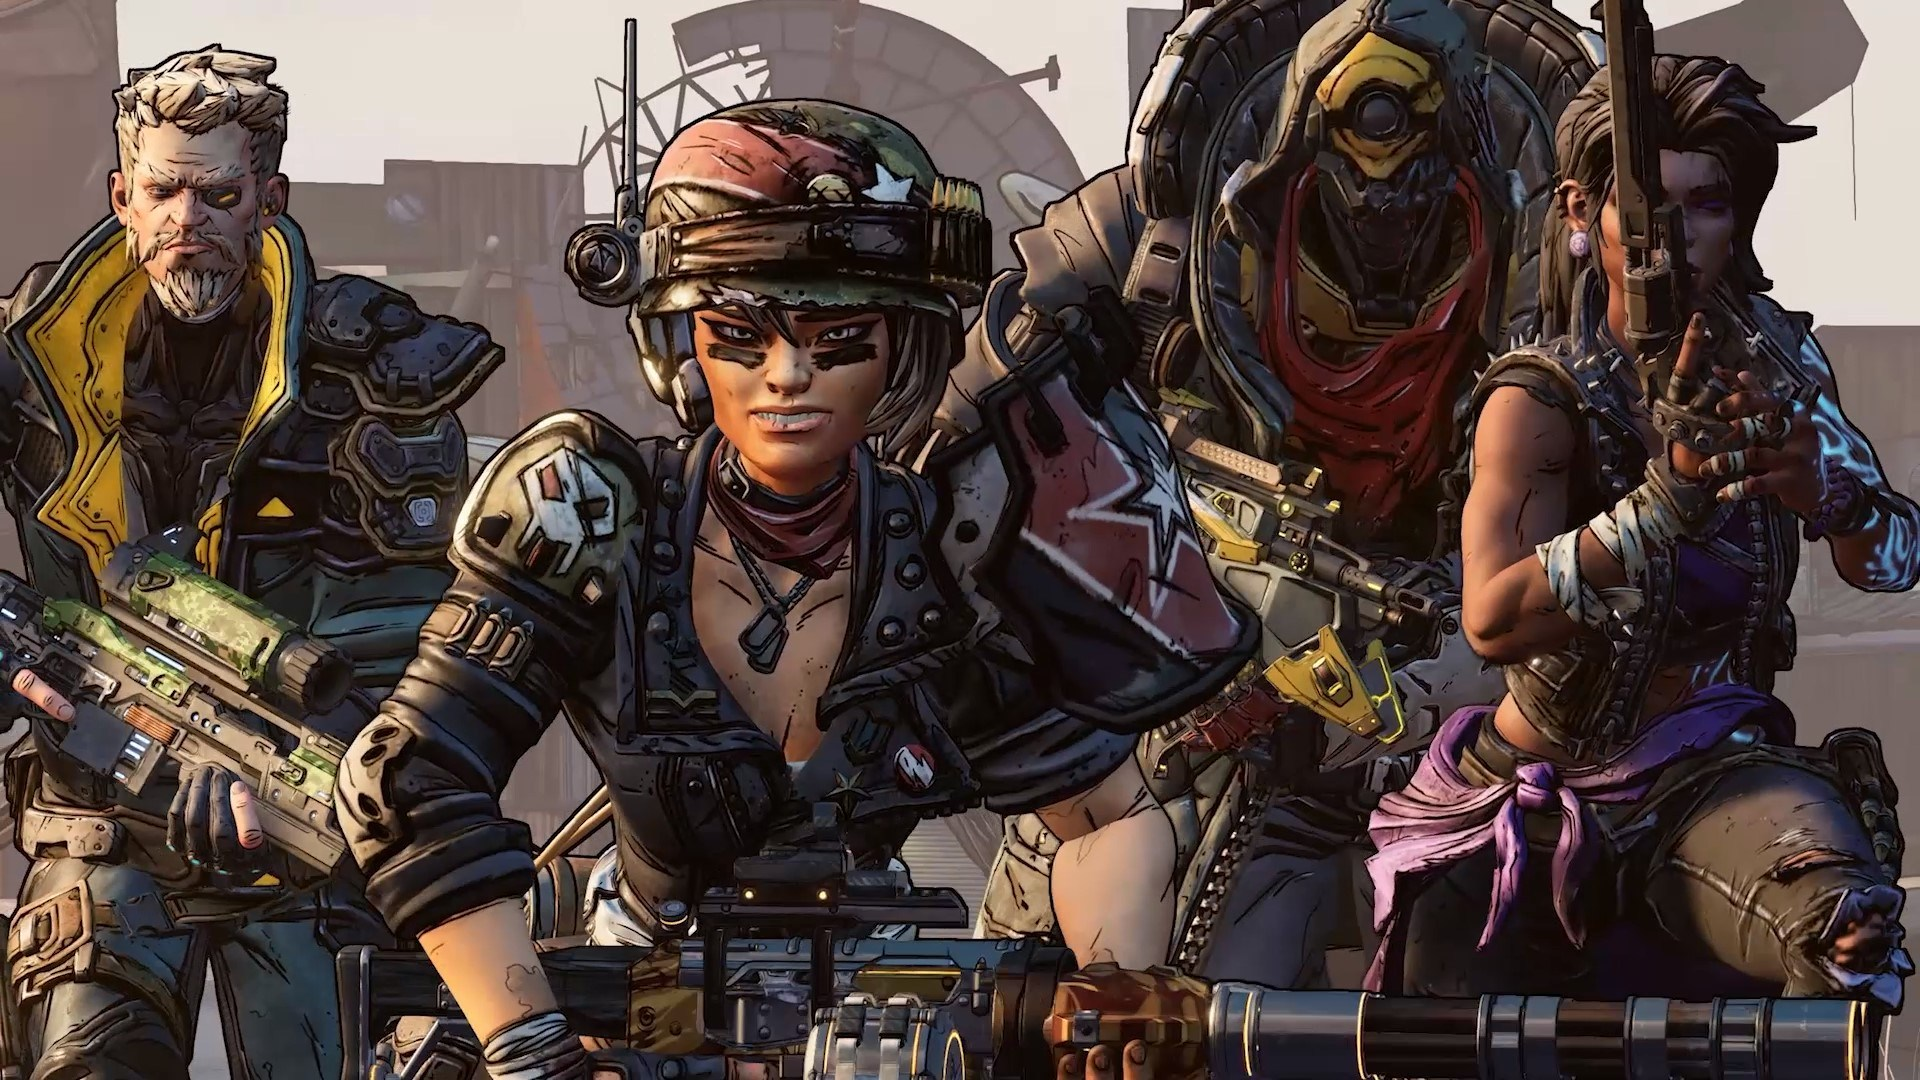 Borderlands 3 Social Features, Livestreaming Tools and More Outlined